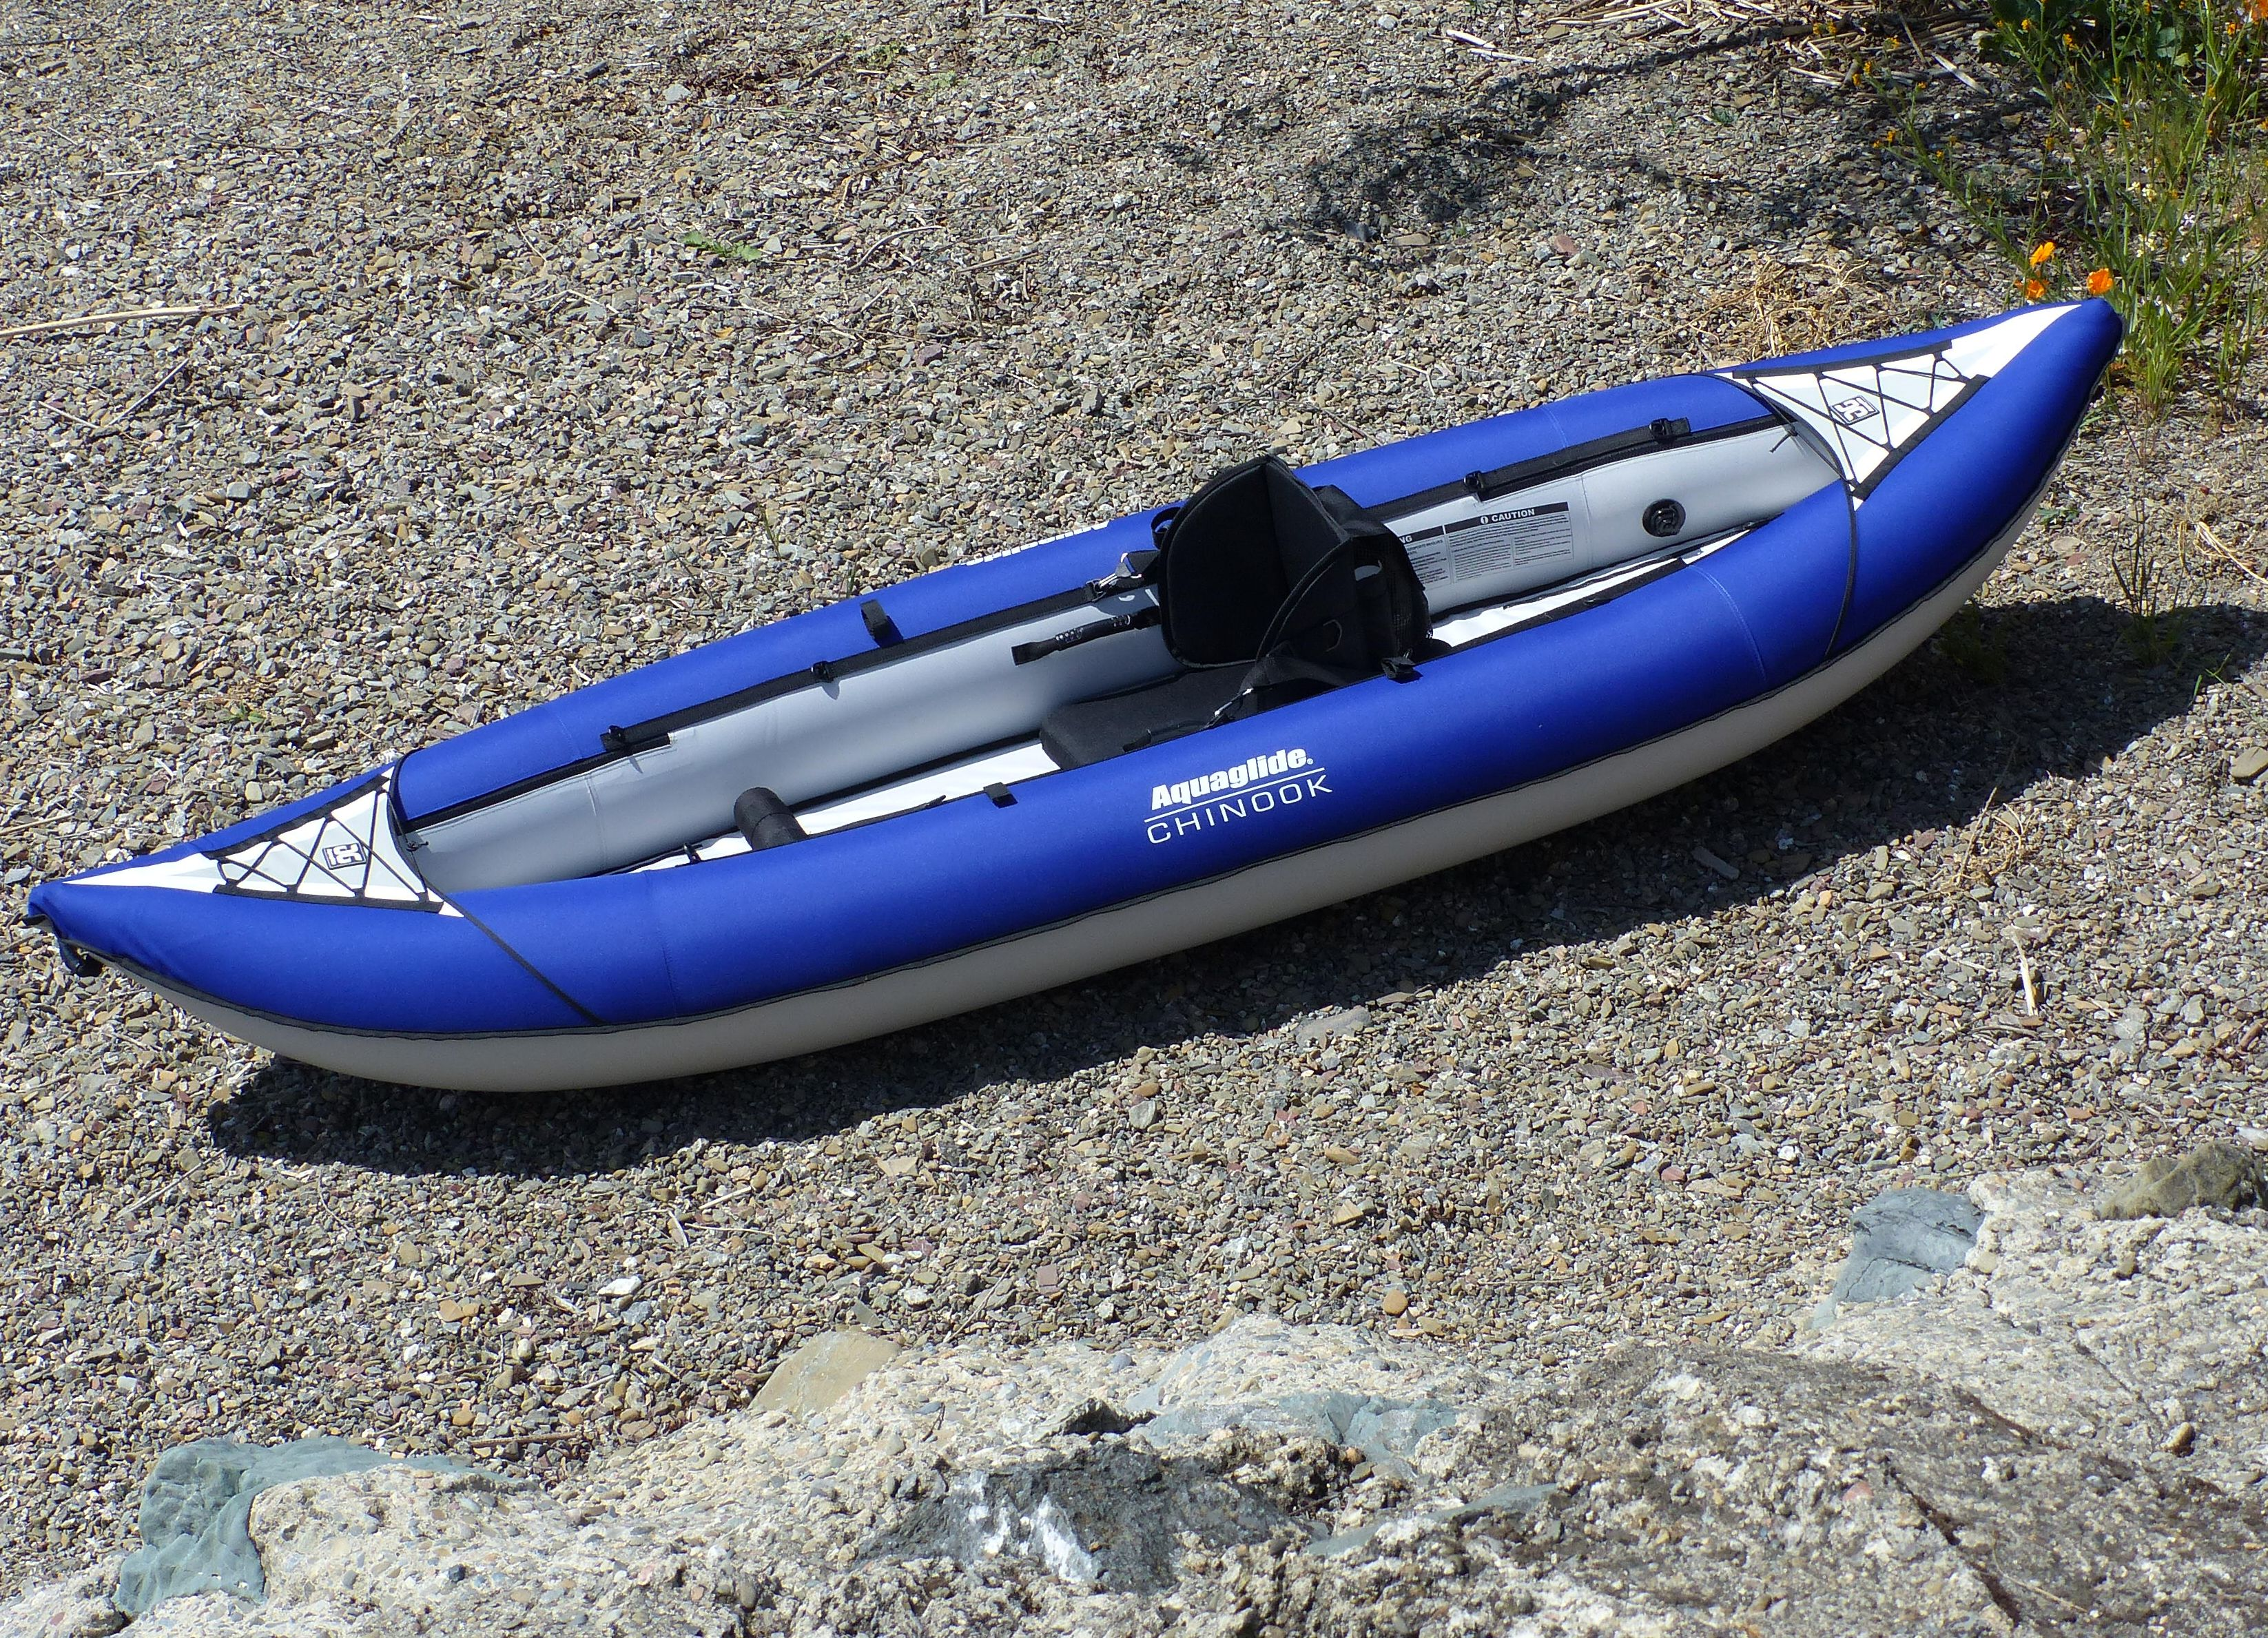 Wondrous Product Review New Chinook 2 Inflatable Kayak From Beutiful Home Inspiration Xortanetmahrainfo